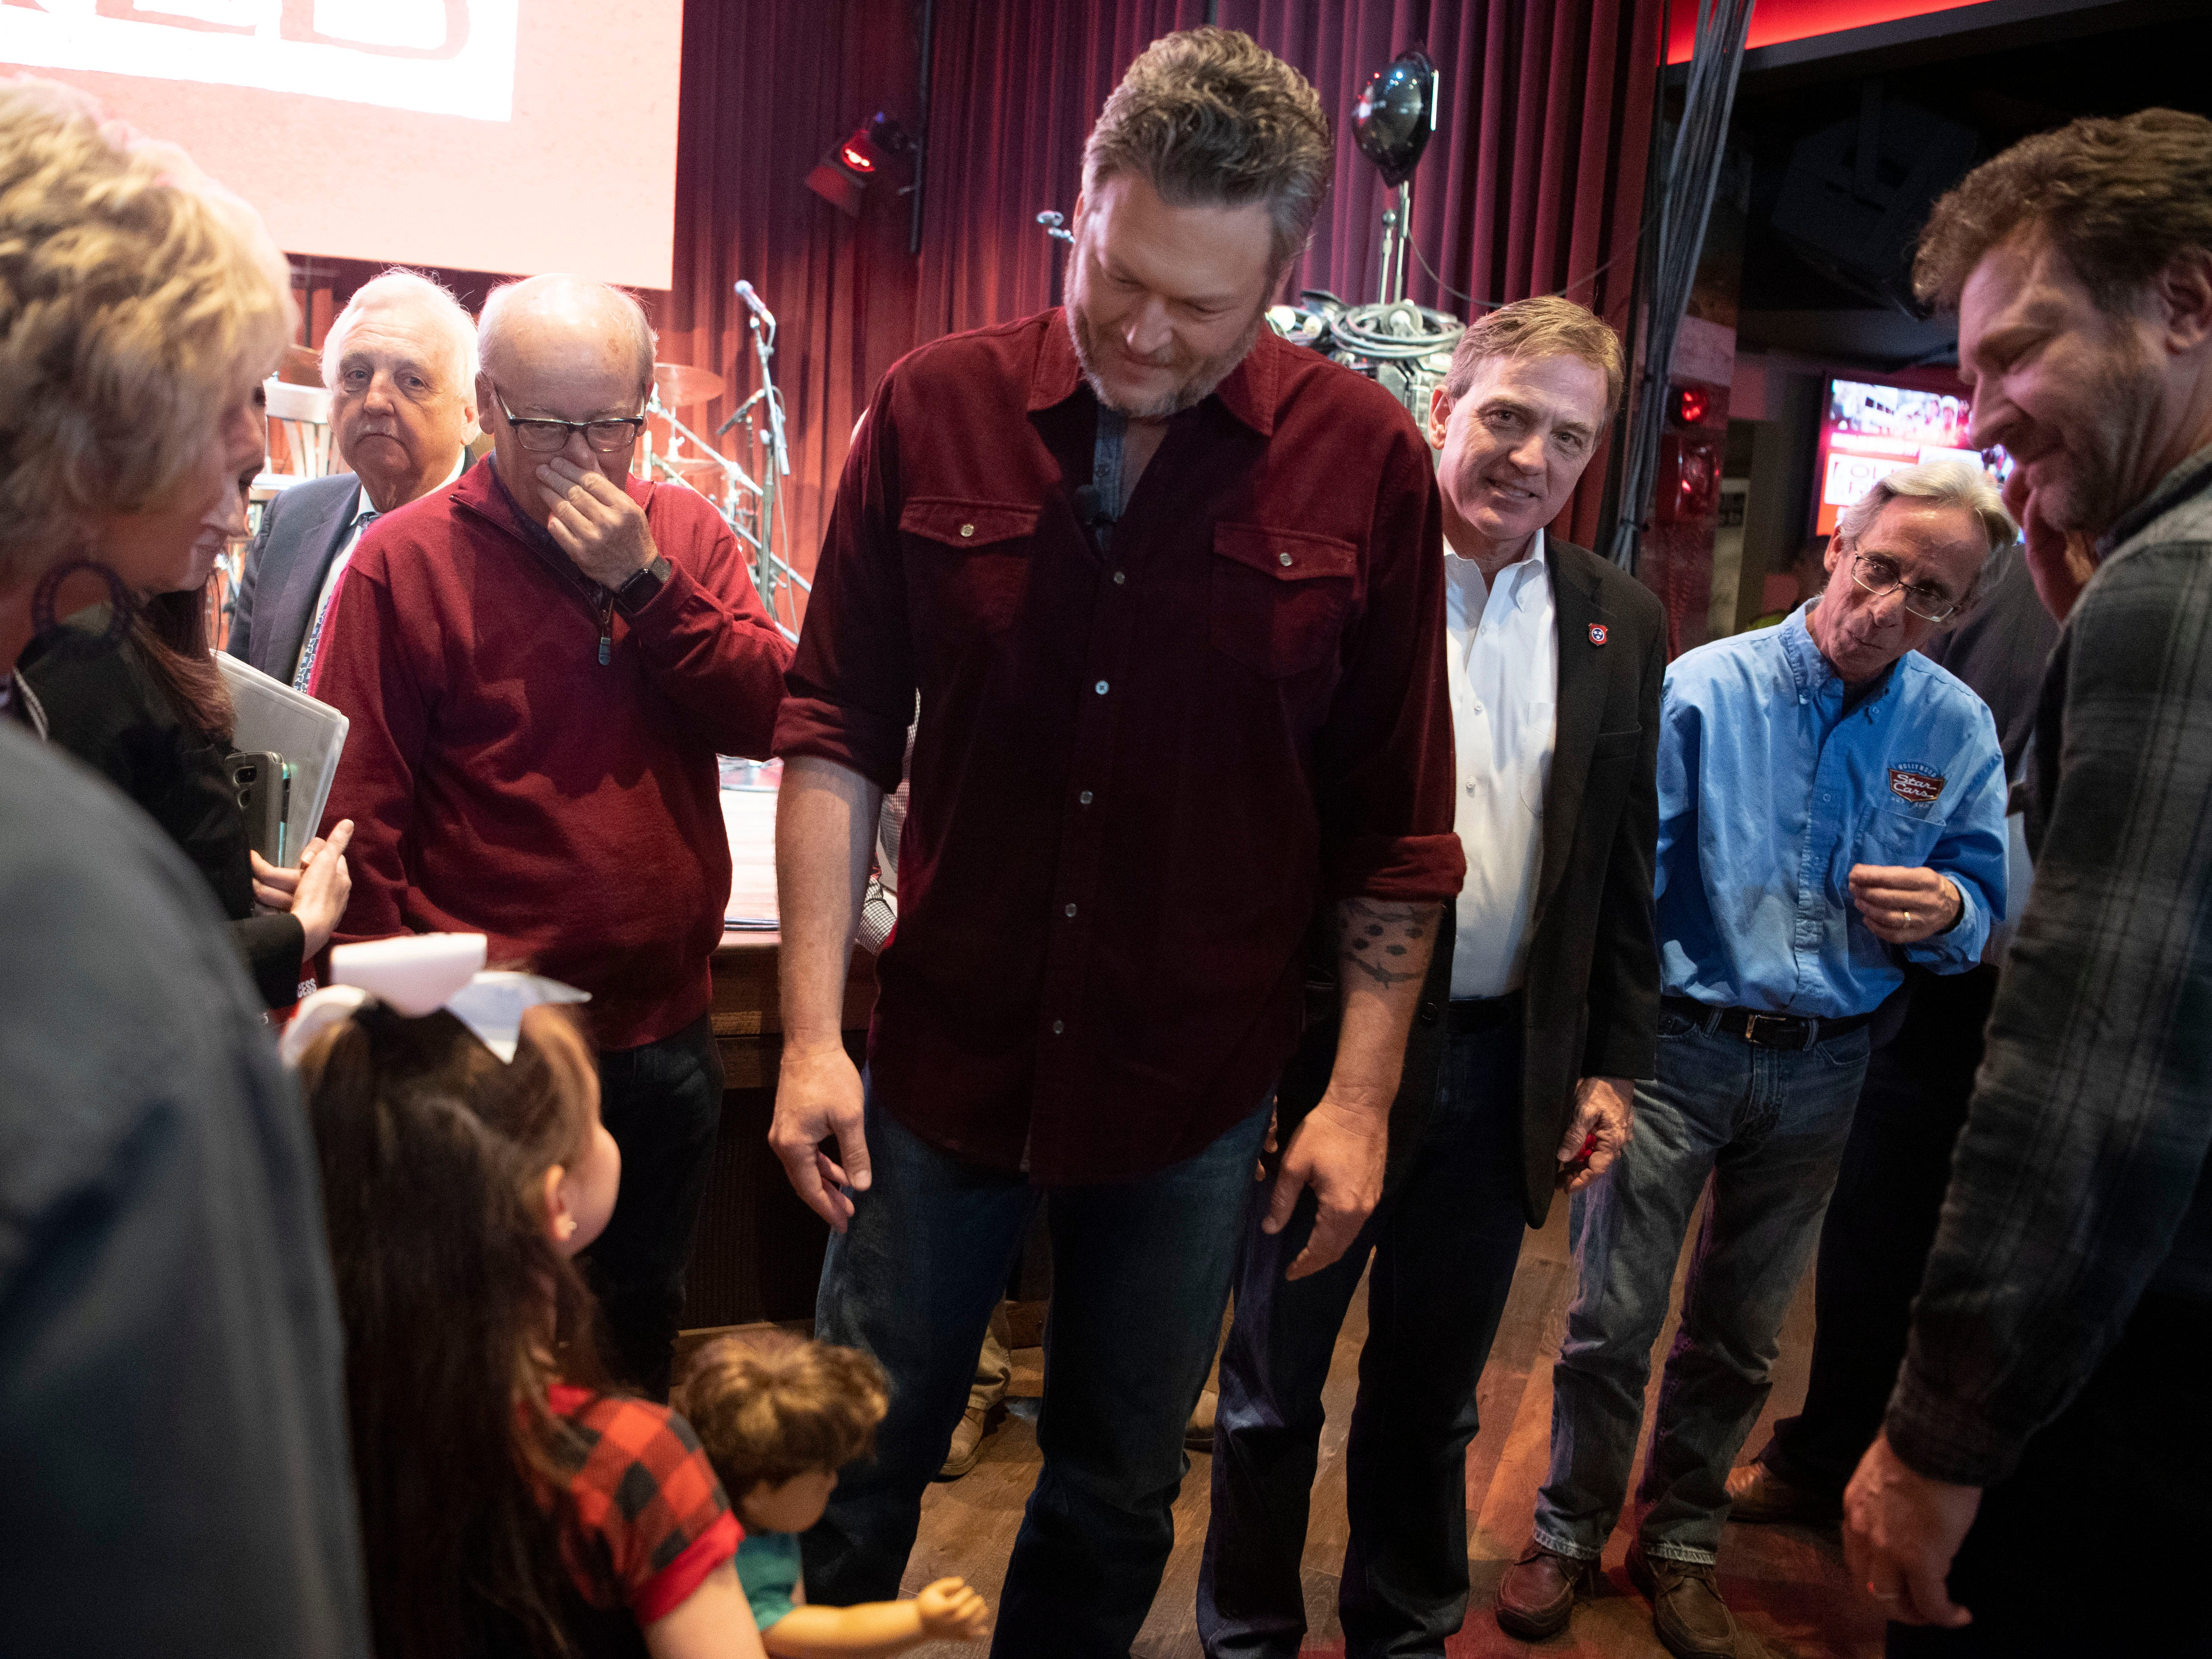 Blake Shelton meets a young fan during the grand opening news conference for Ole Red Gatlinburg on Wednesday, March 13, 2019.